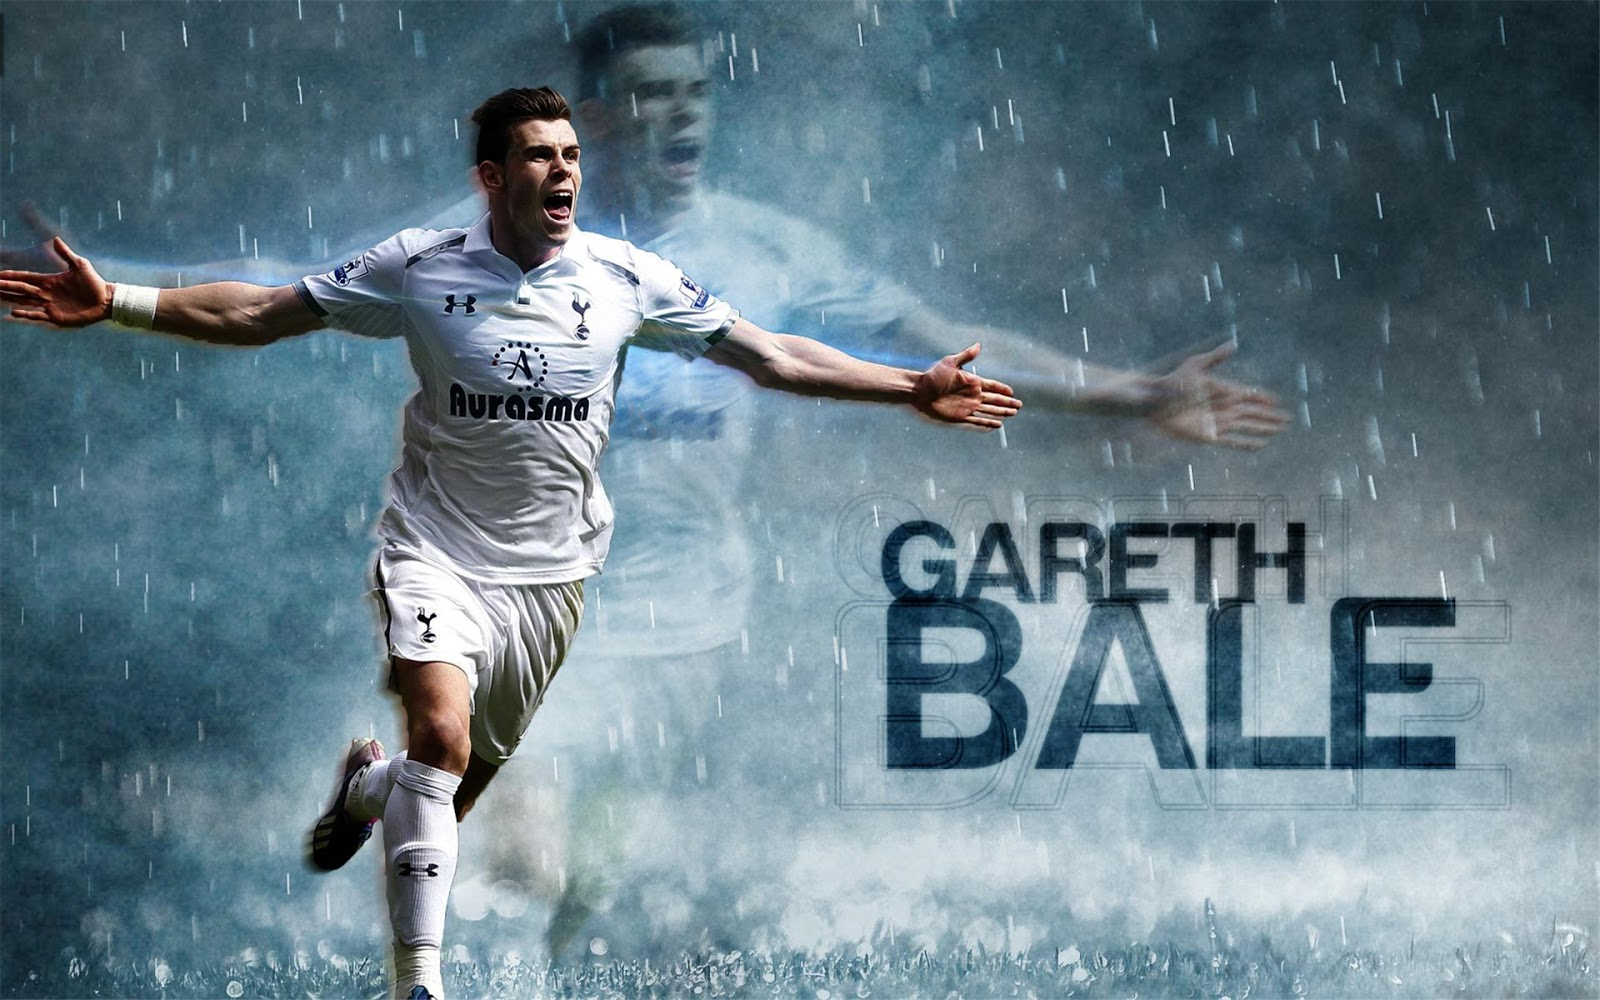 Gareth Bale Fresh Hd Wallpapers 2013 ~ All About HD Wallpapers